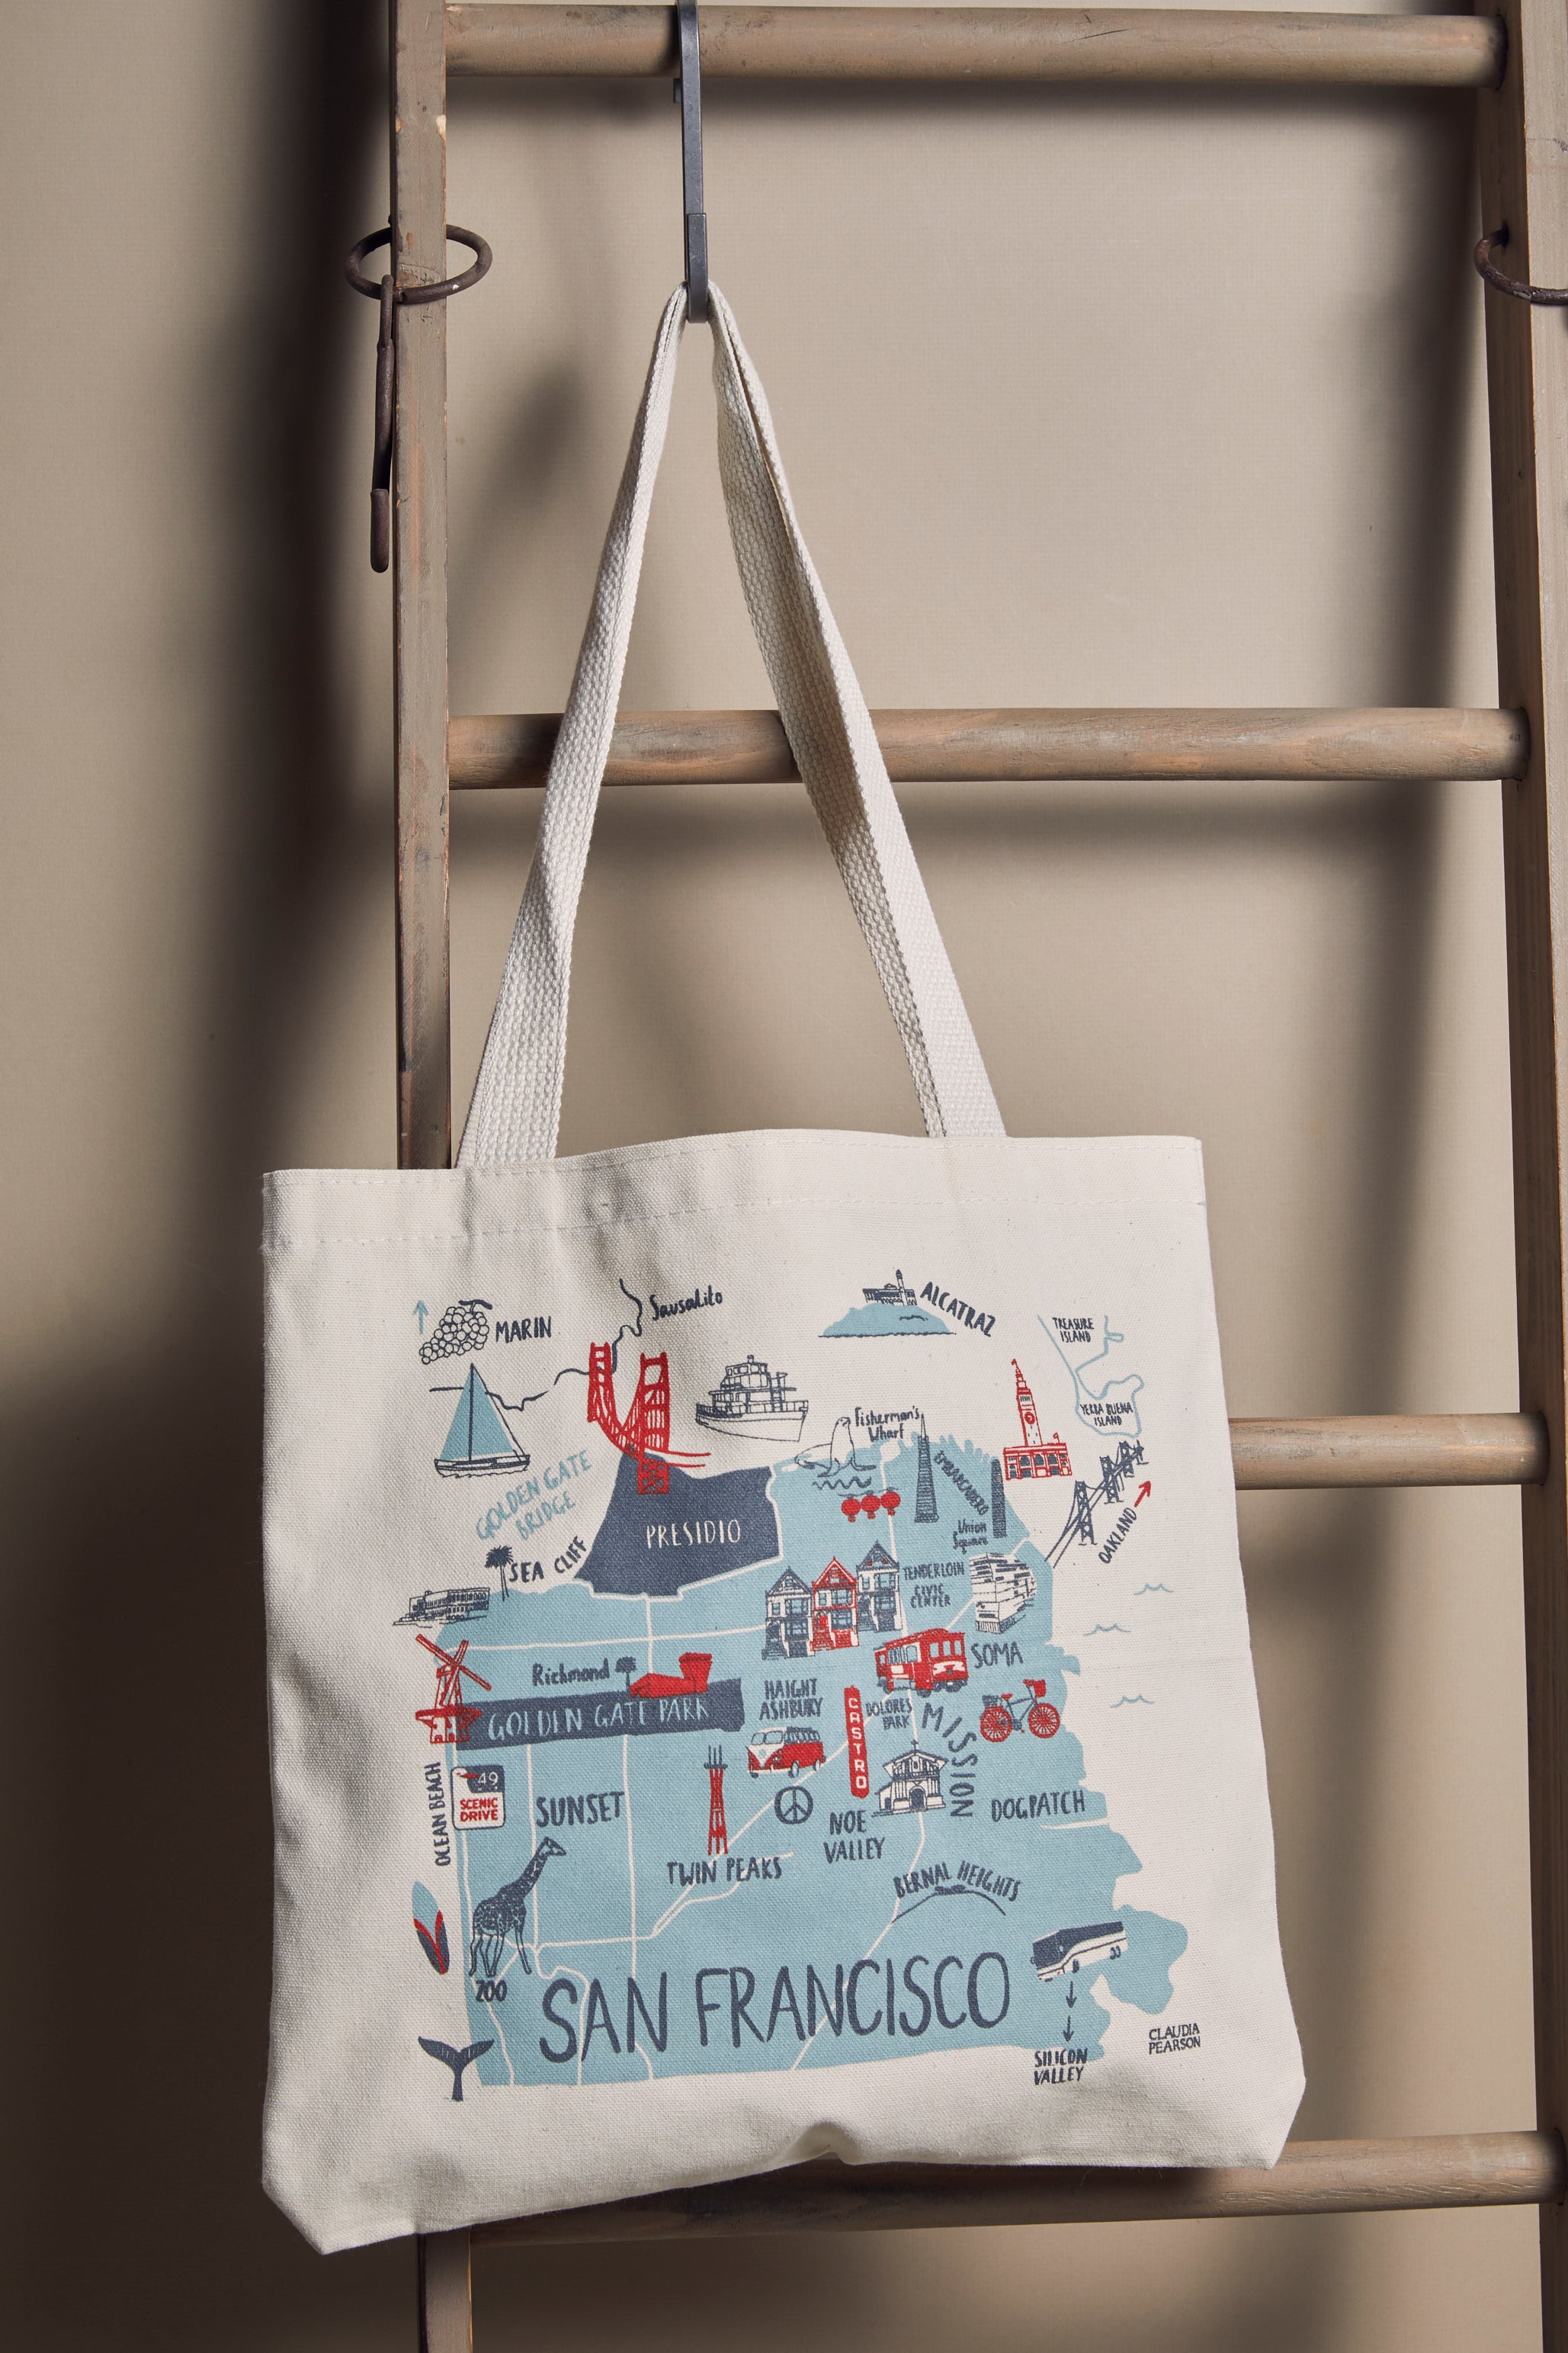 San Francisco Everyday Map Tote - P I C N I C